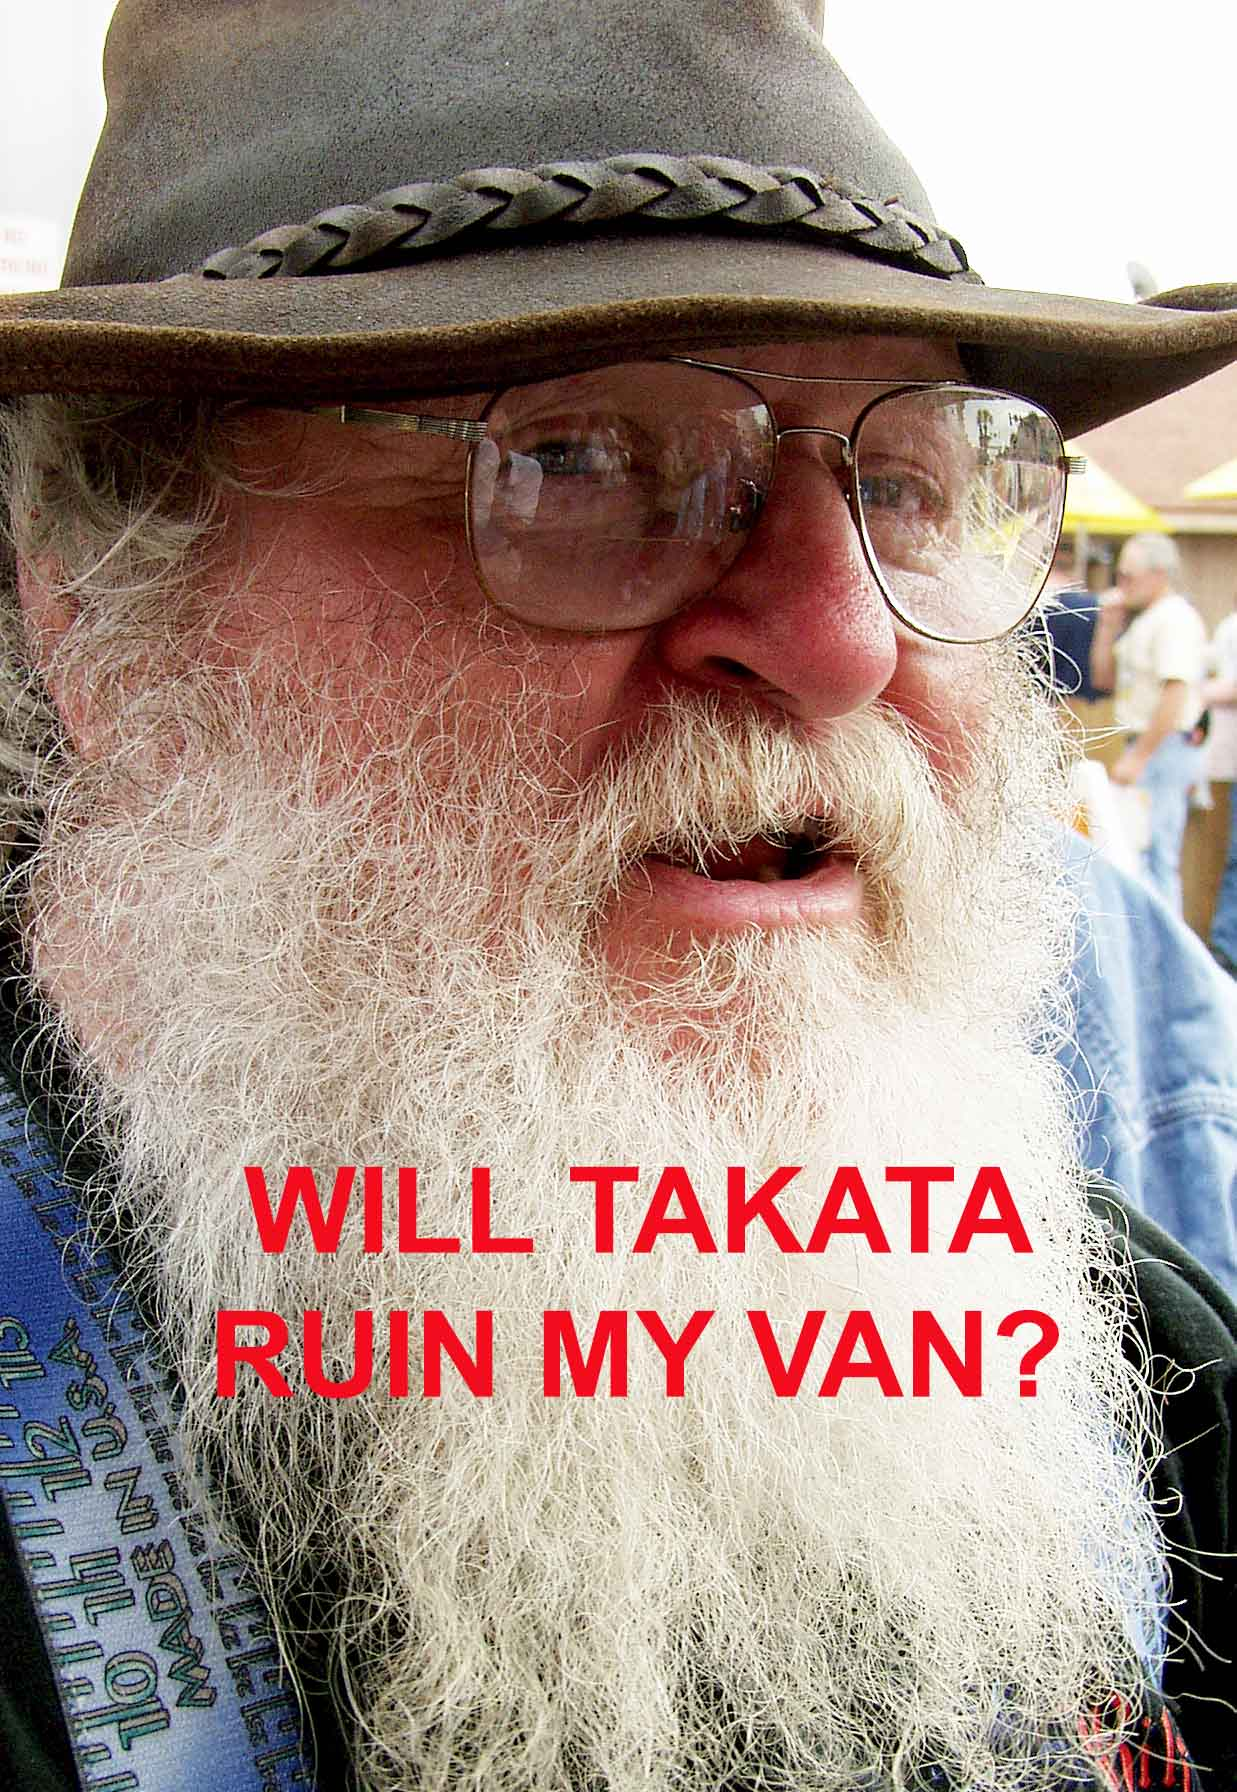 WILL TAKATA RUIN MY VAN?